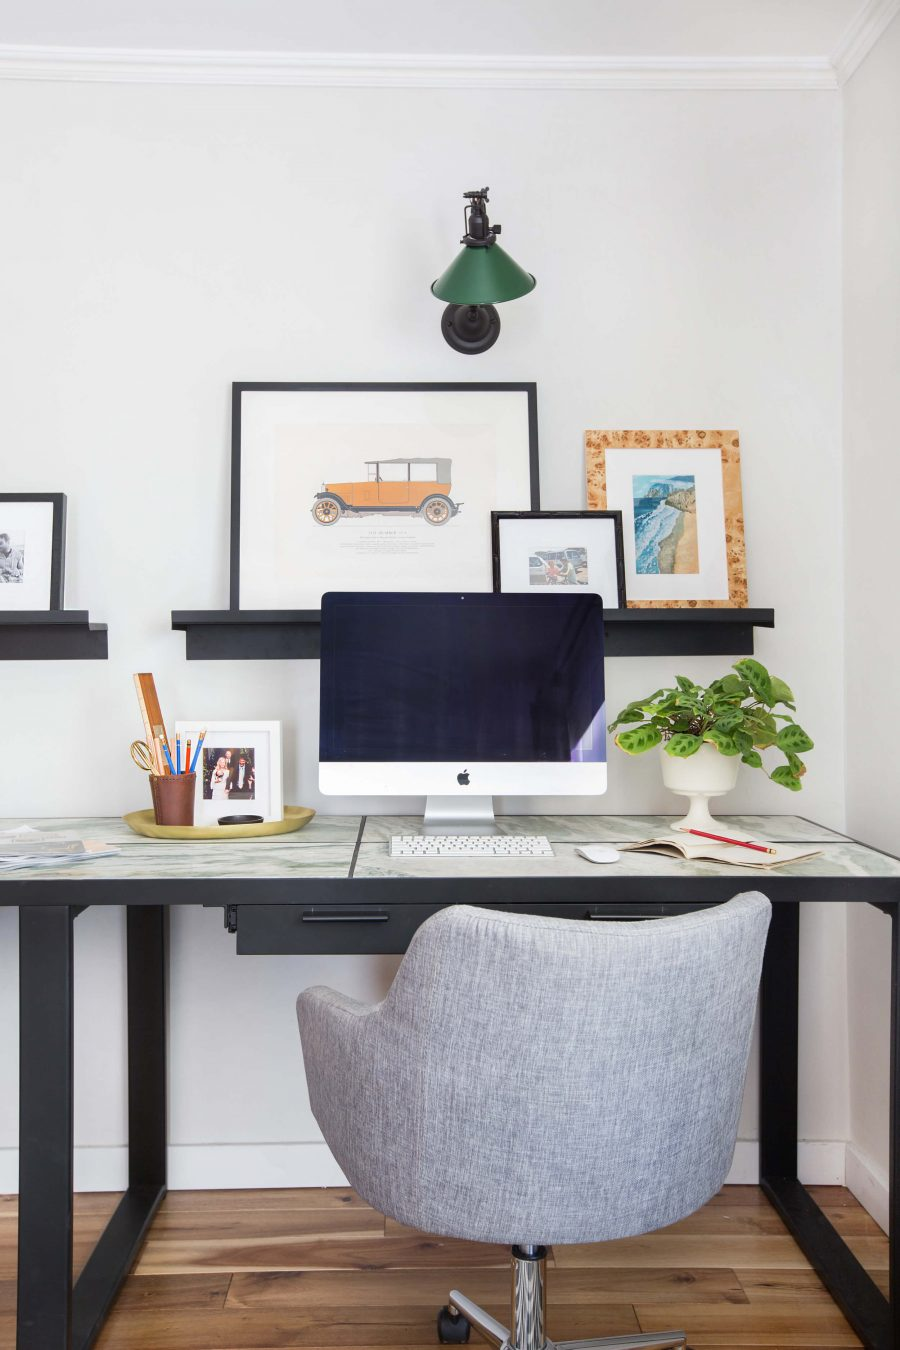 office accessories for less, copycatchic luxe living for less, budget home decor and design, daily finds, home trends, sales, budget travel and room redos